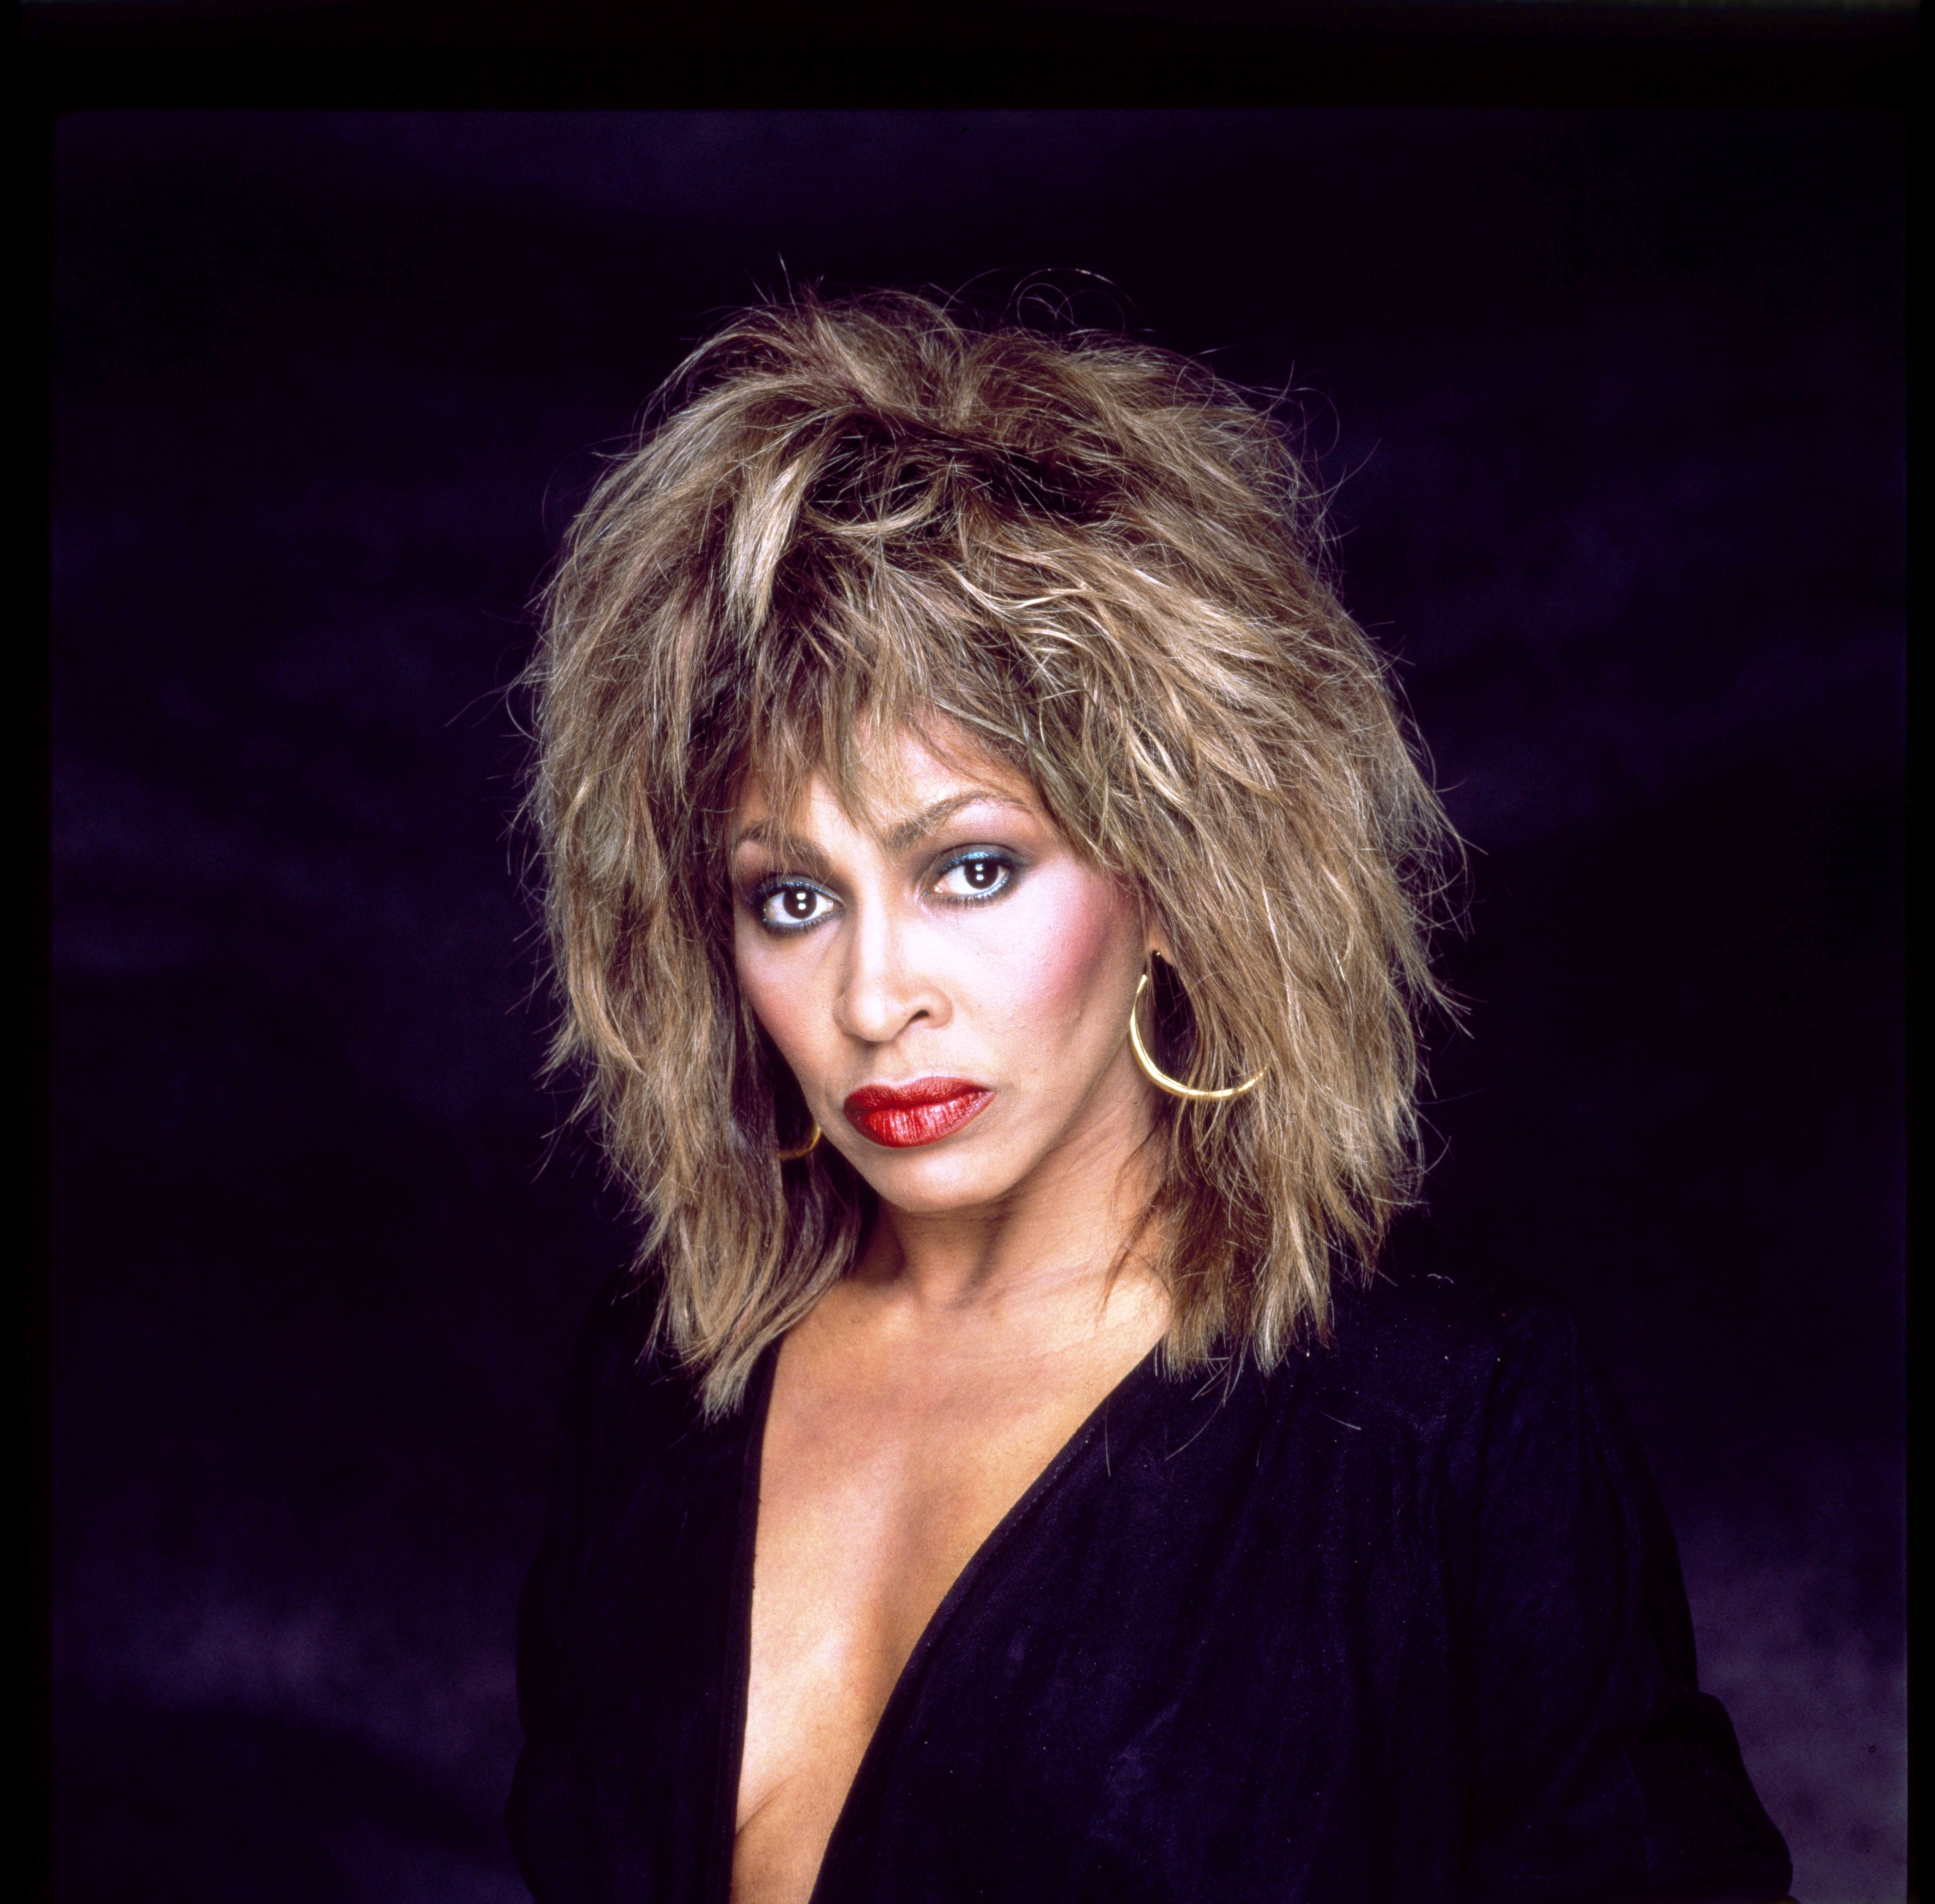 tina turner wallpapers high resolution and quality download. Black Bedroom Furniture Sets. Home Design Ideas